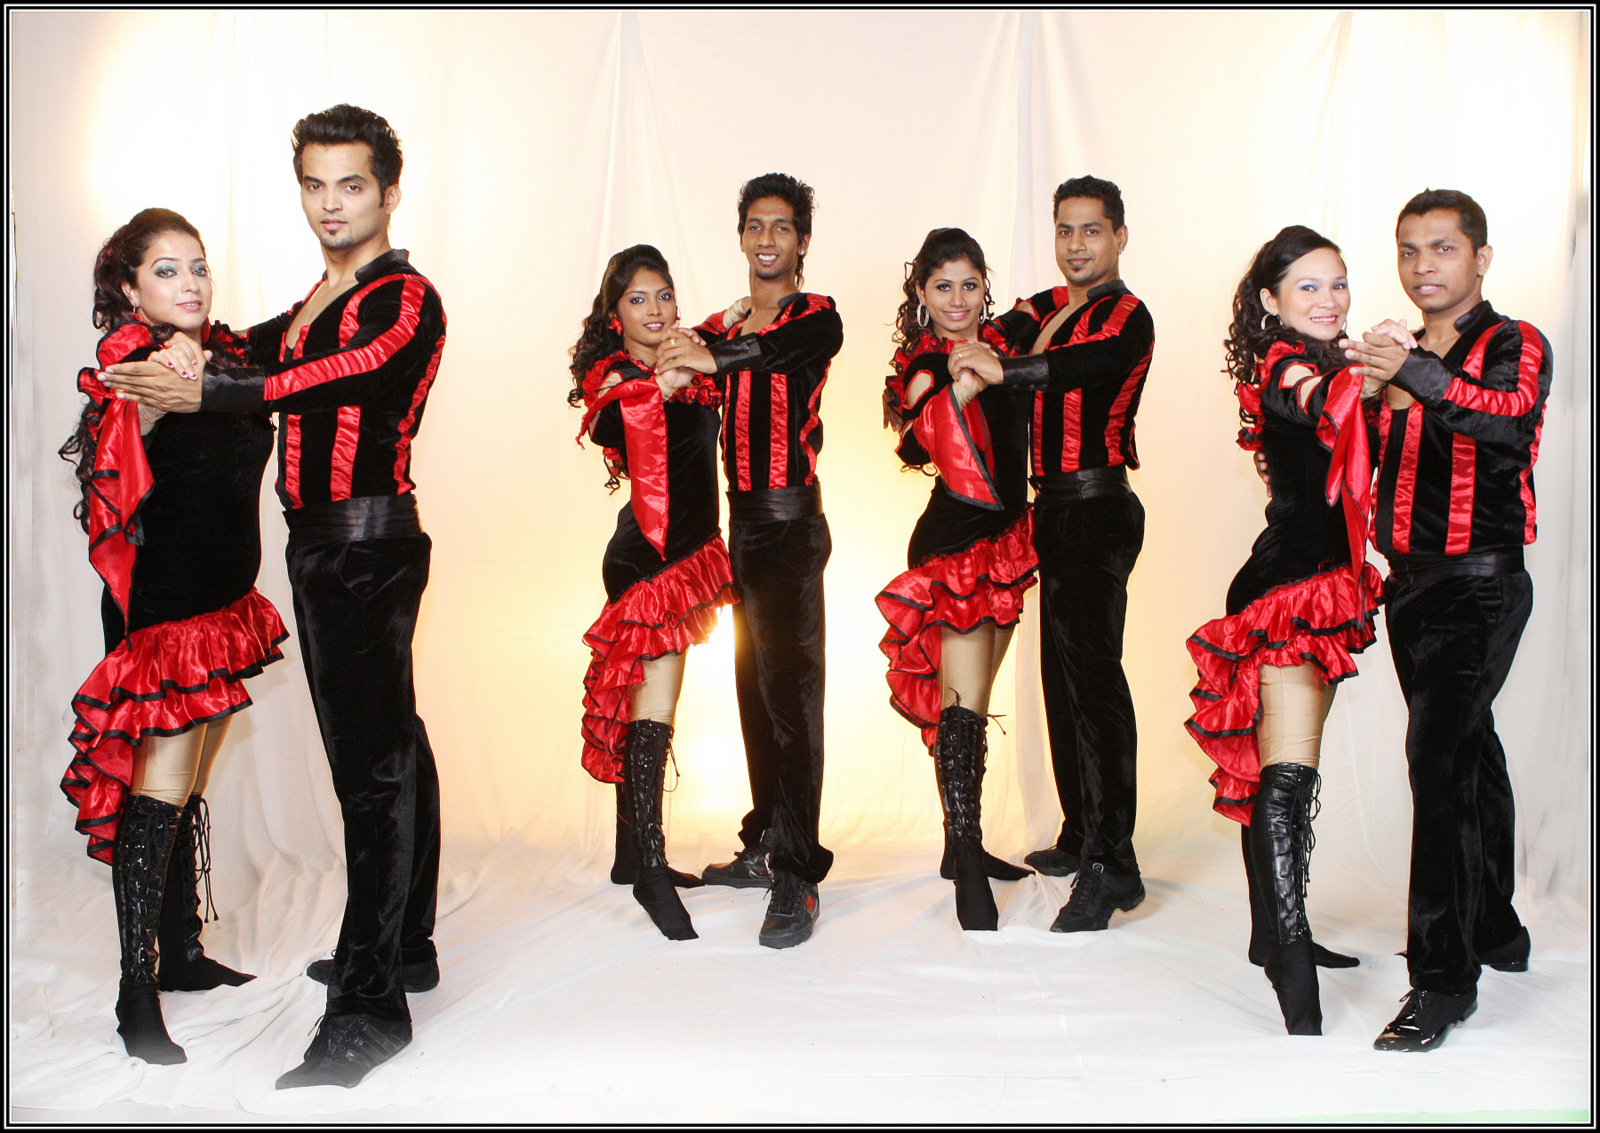 JIVE DANCE LESSONS IN DUBAI, Call now 04 3709676